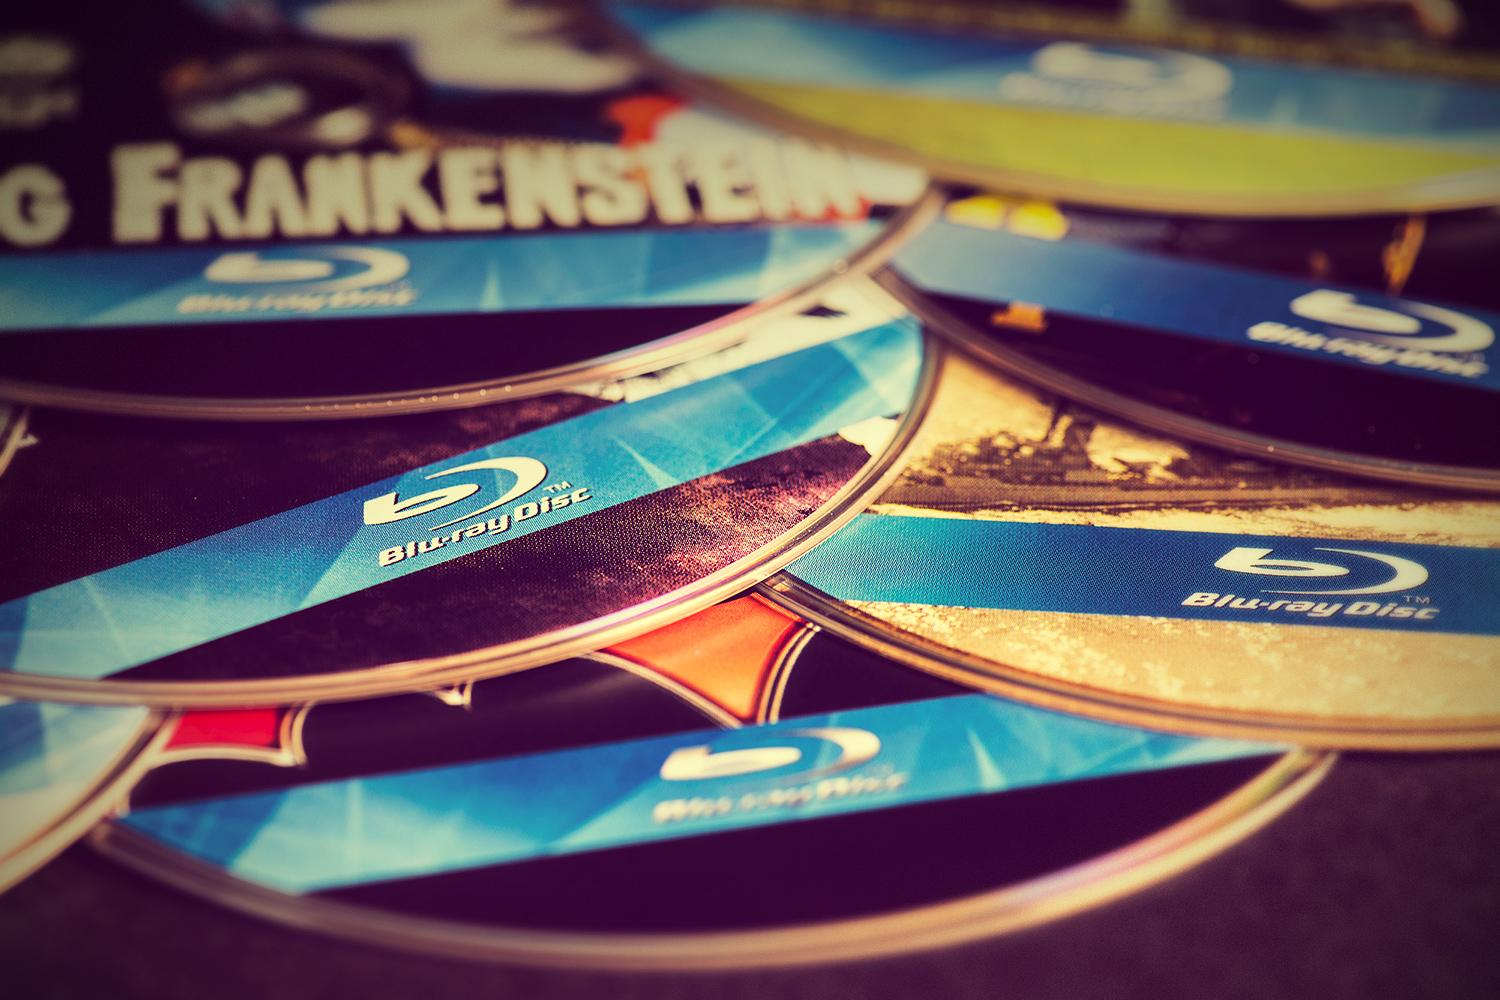 How To Rip A DVD Or Blu-Ray Movie